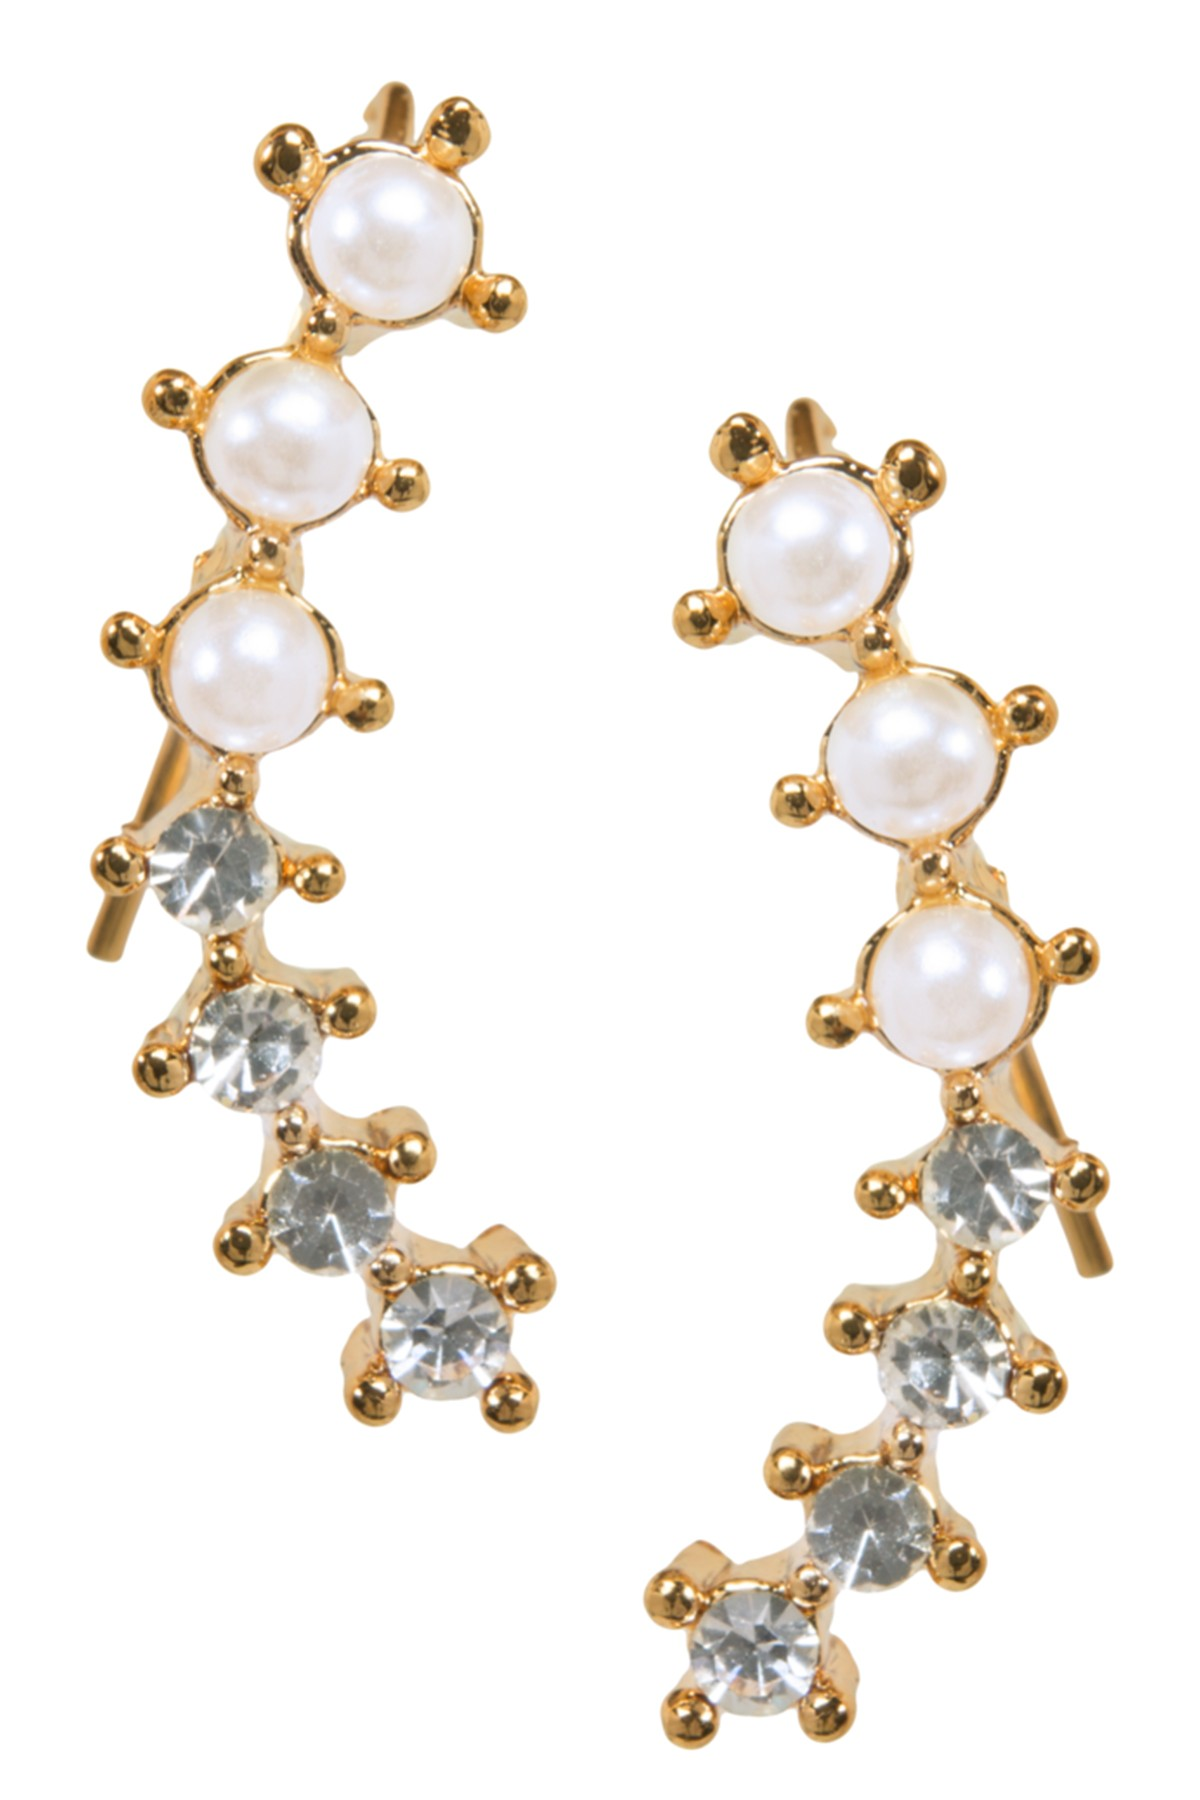 gold ear crawler earrings with diamonds and pearls